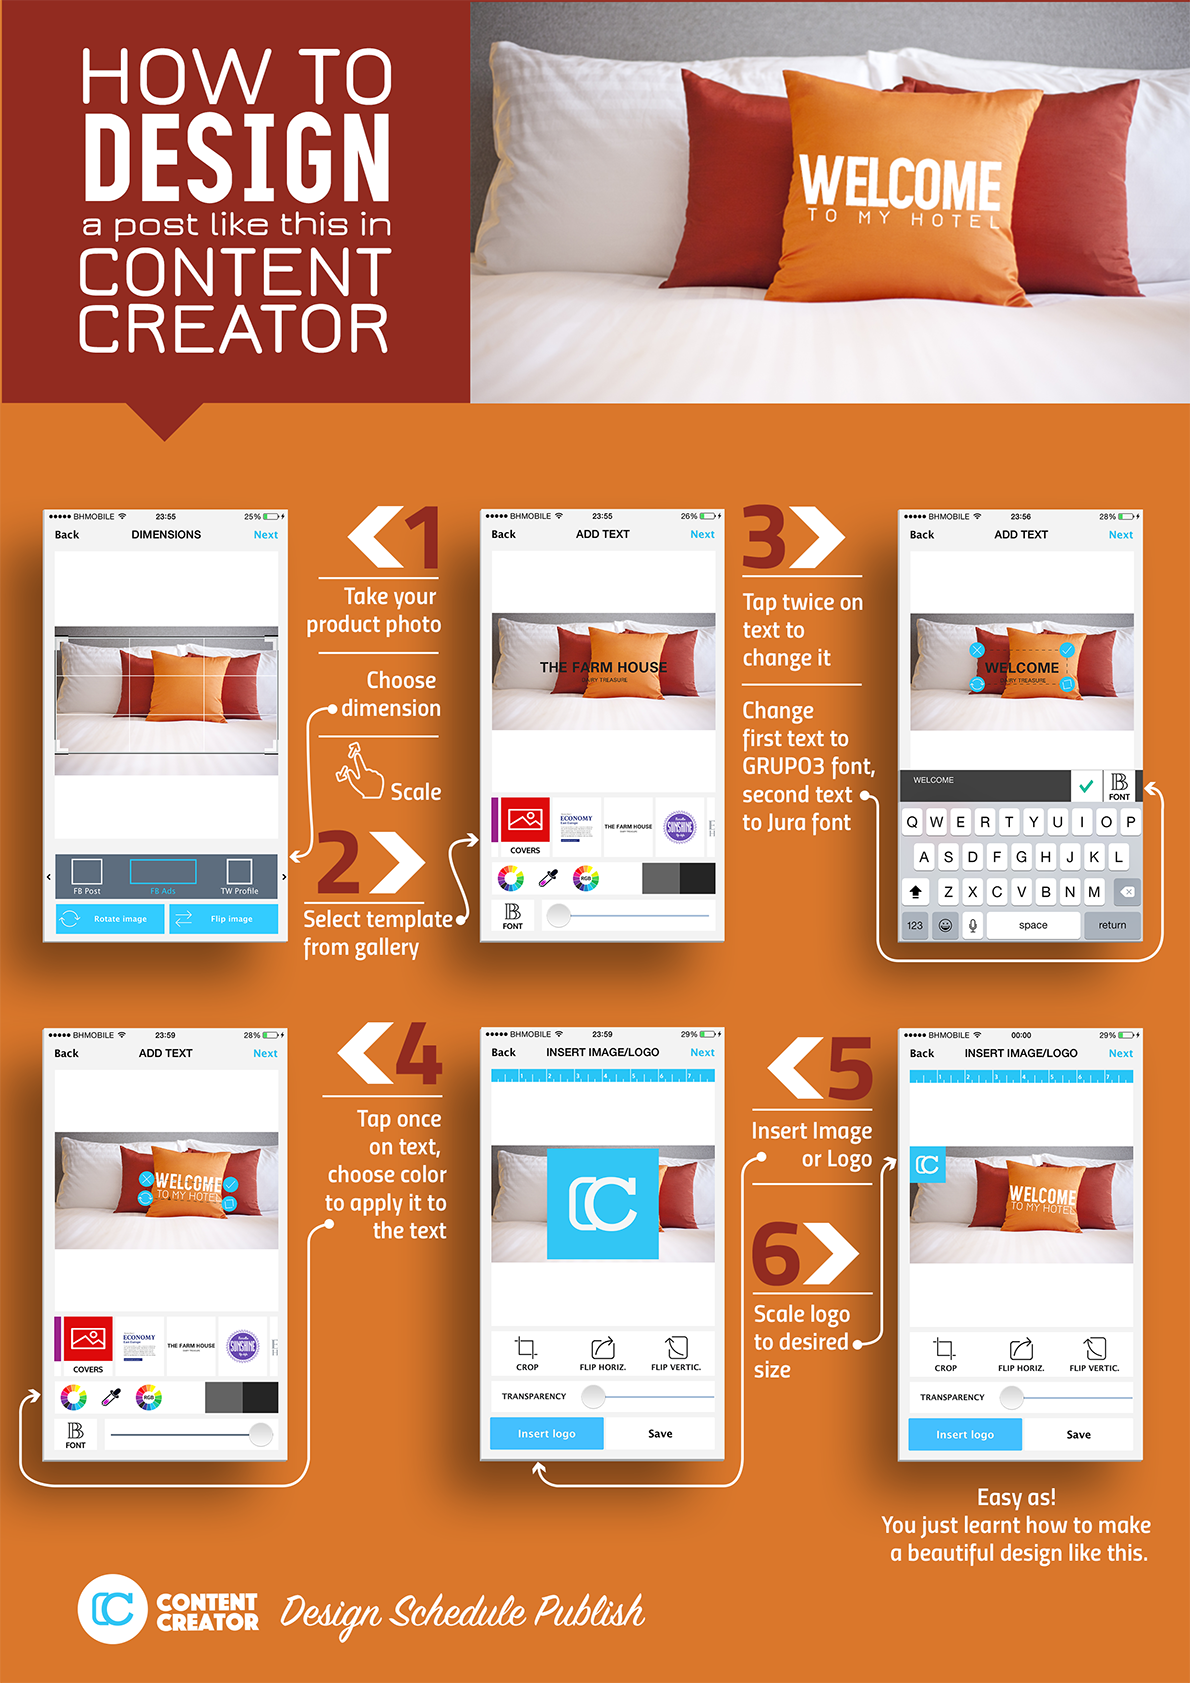 How to design 5 star posts like this with content creator app Blueprint creator app